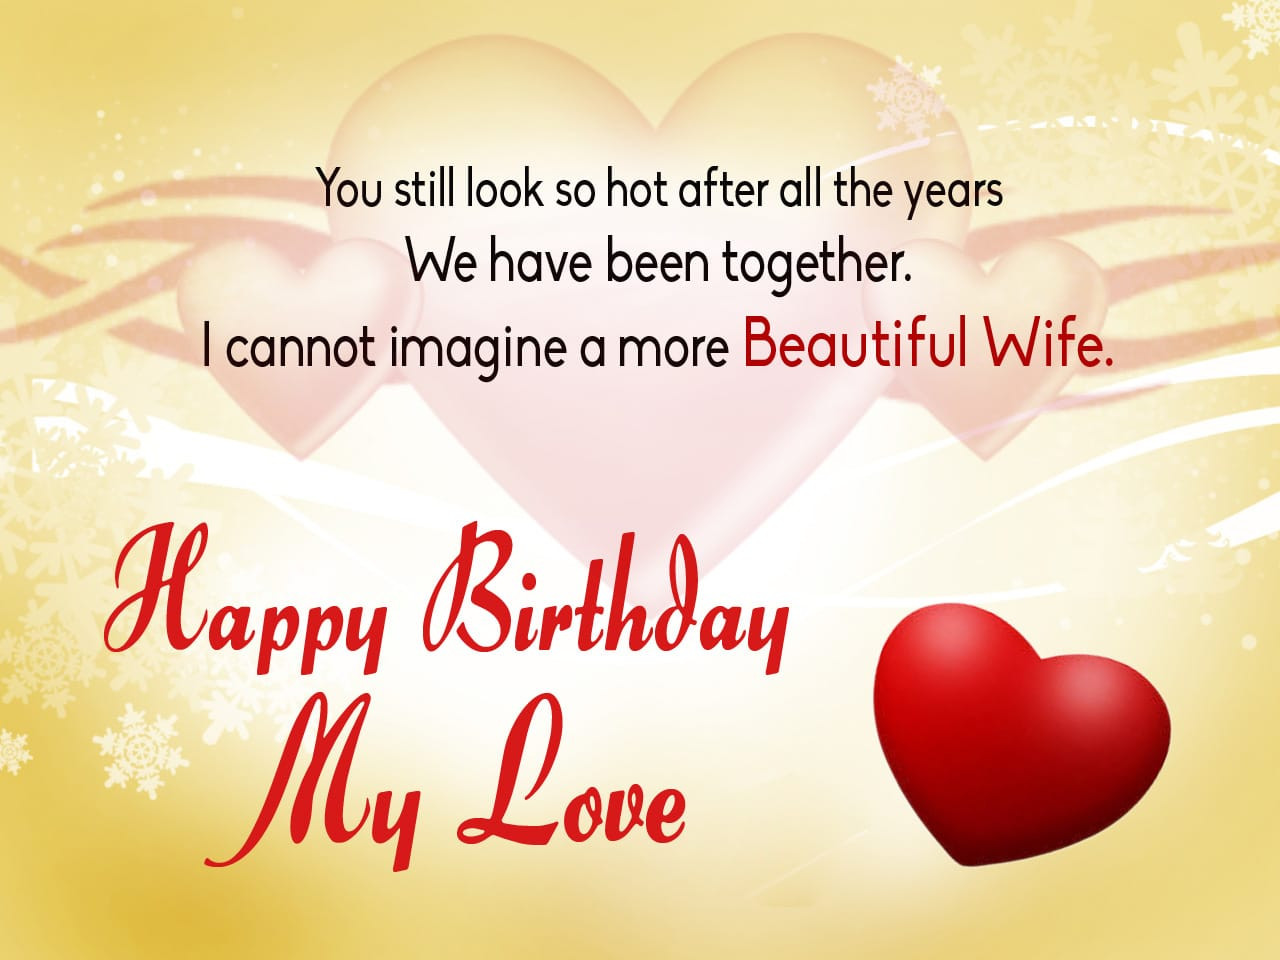 Best ideas about Happy Birthday Wishes For Wife . Save or Pin Happy Birthday Wife Meme Now.